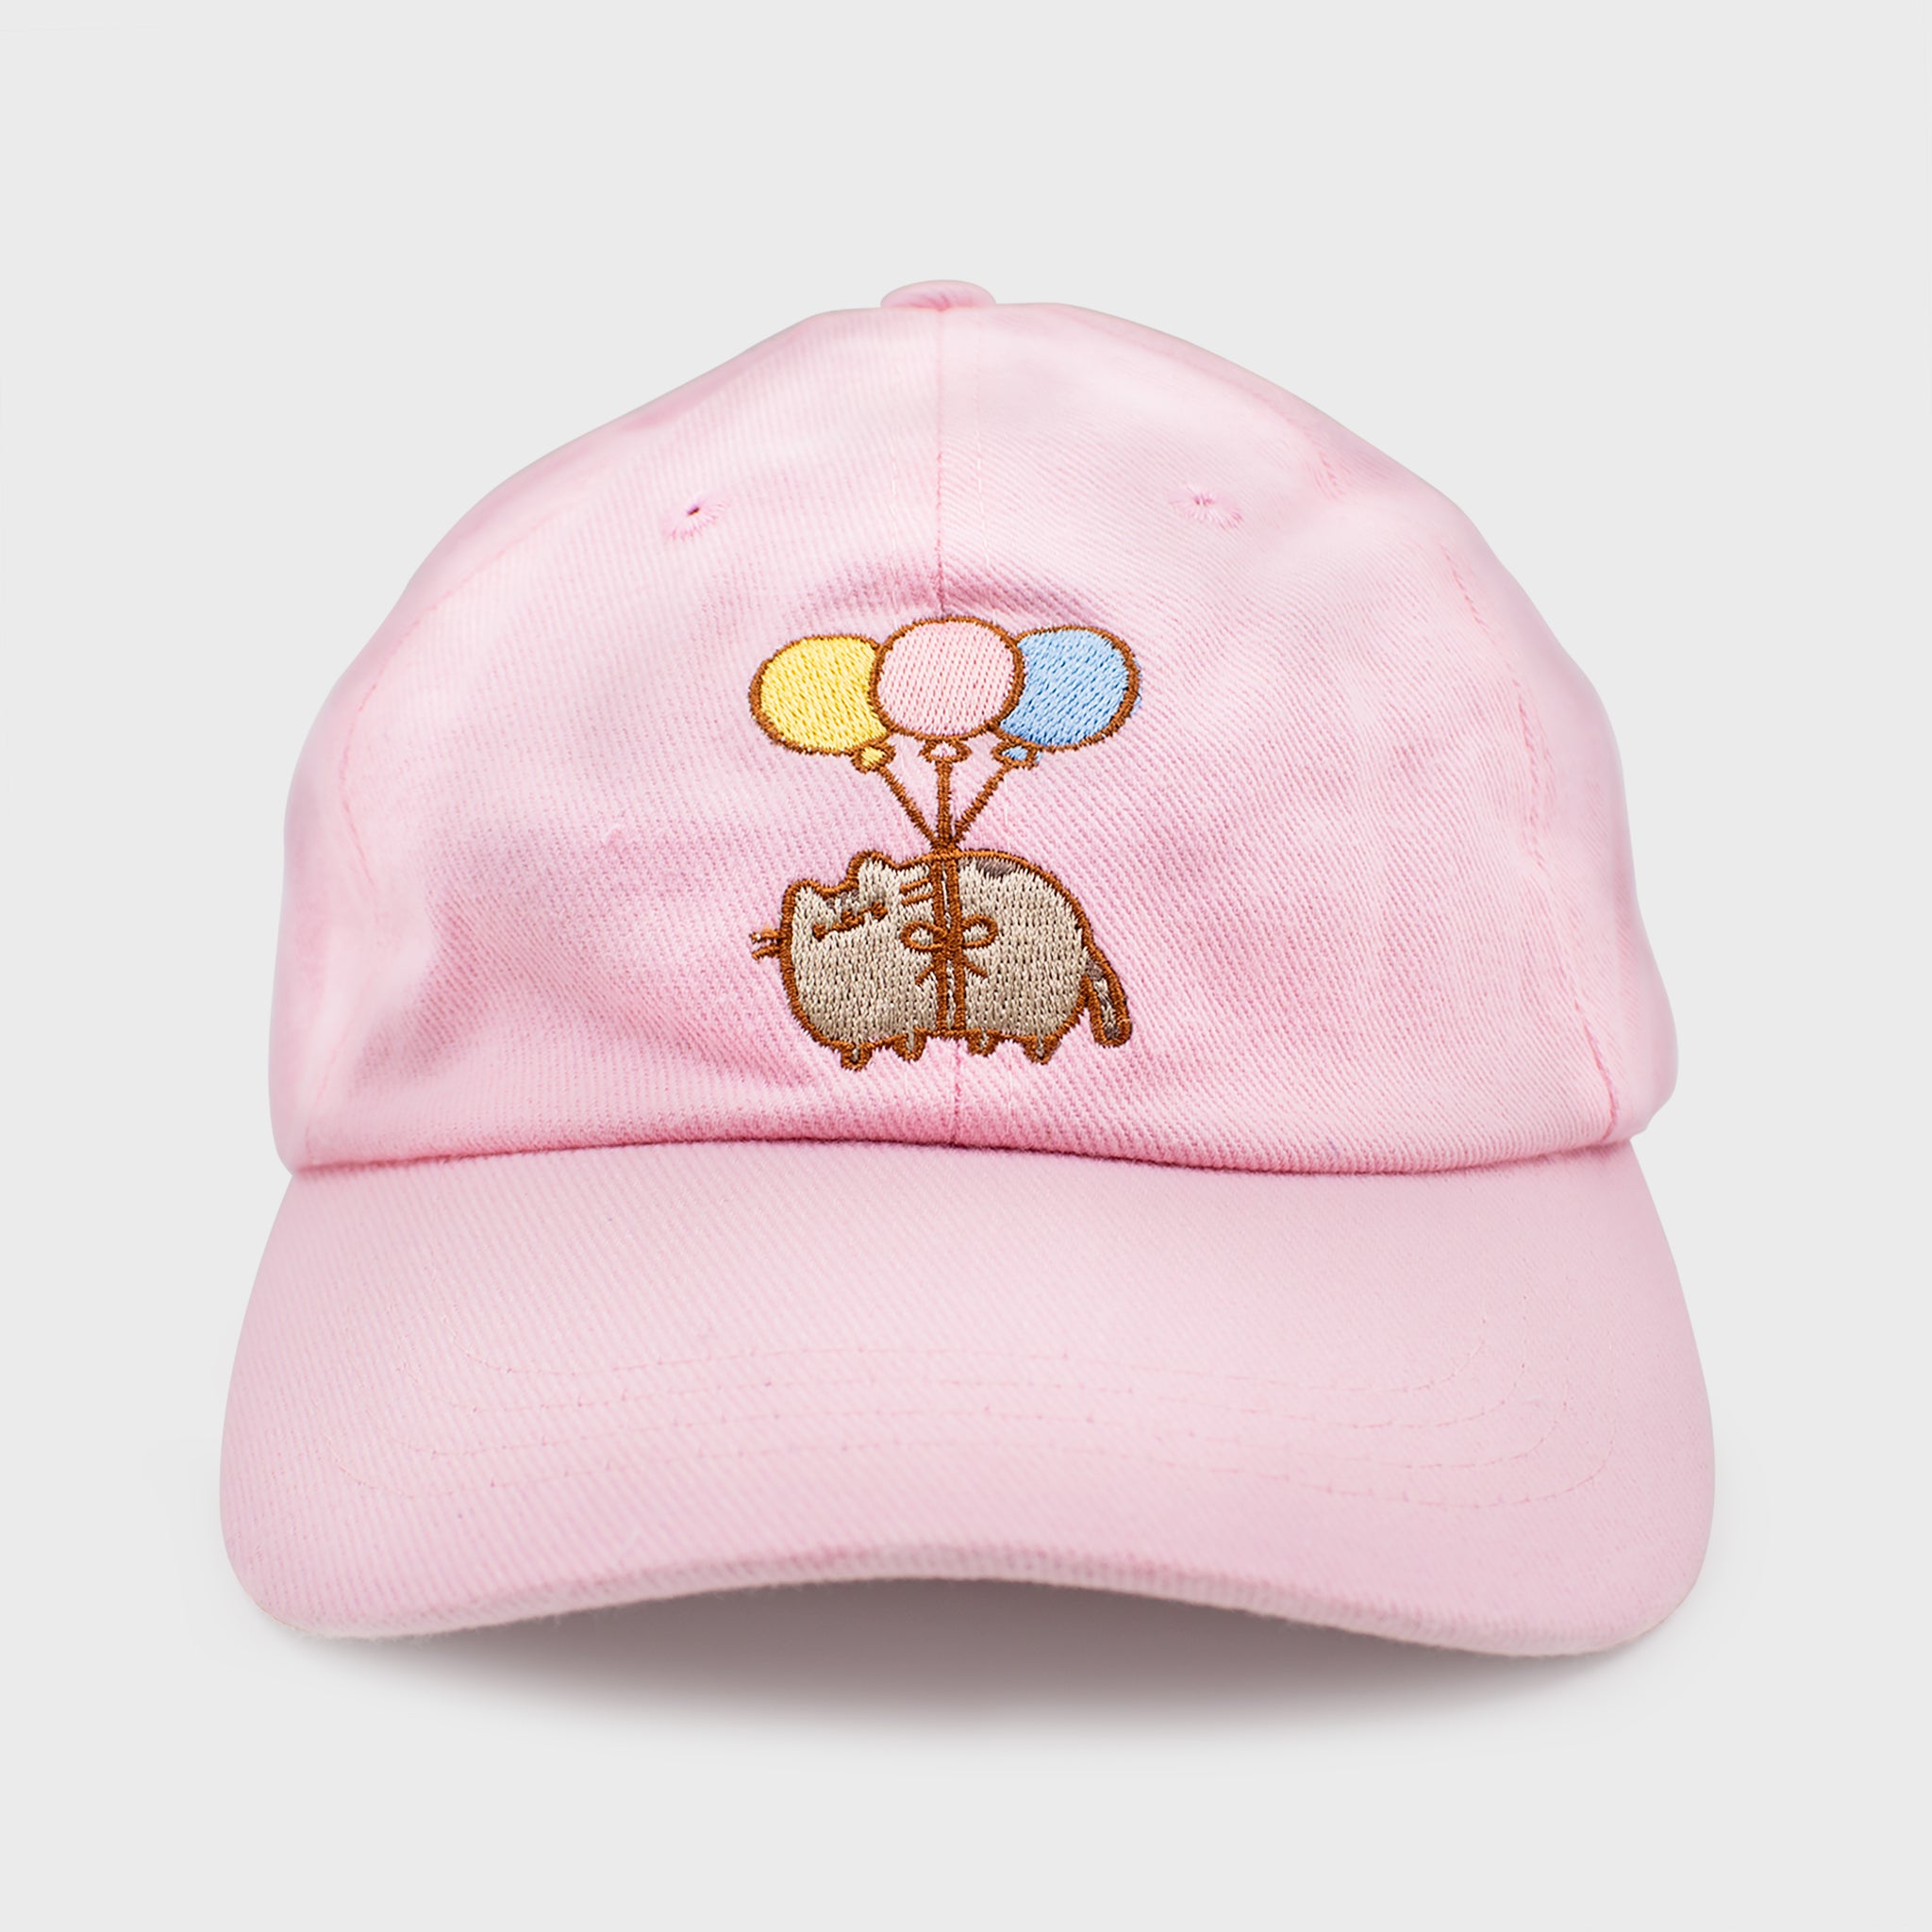 pusheen cap hat baseball cap dad hat pink balloons cute cat culturefly